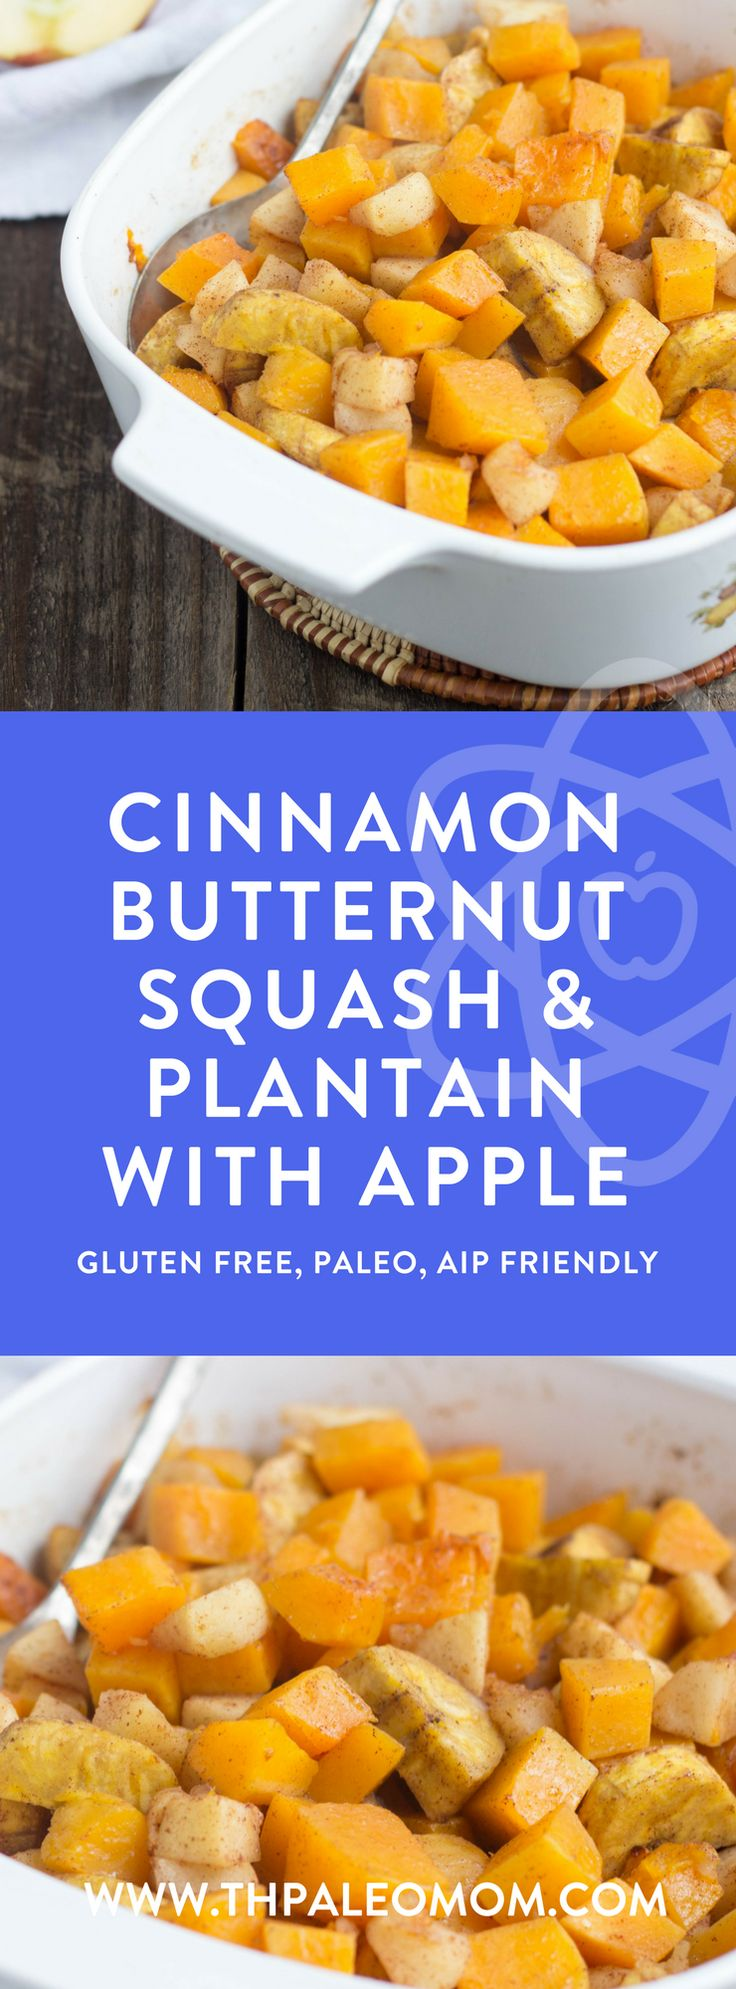 Cinnamon Butternut Squash and Plantain with Apple   The Paleo Mom